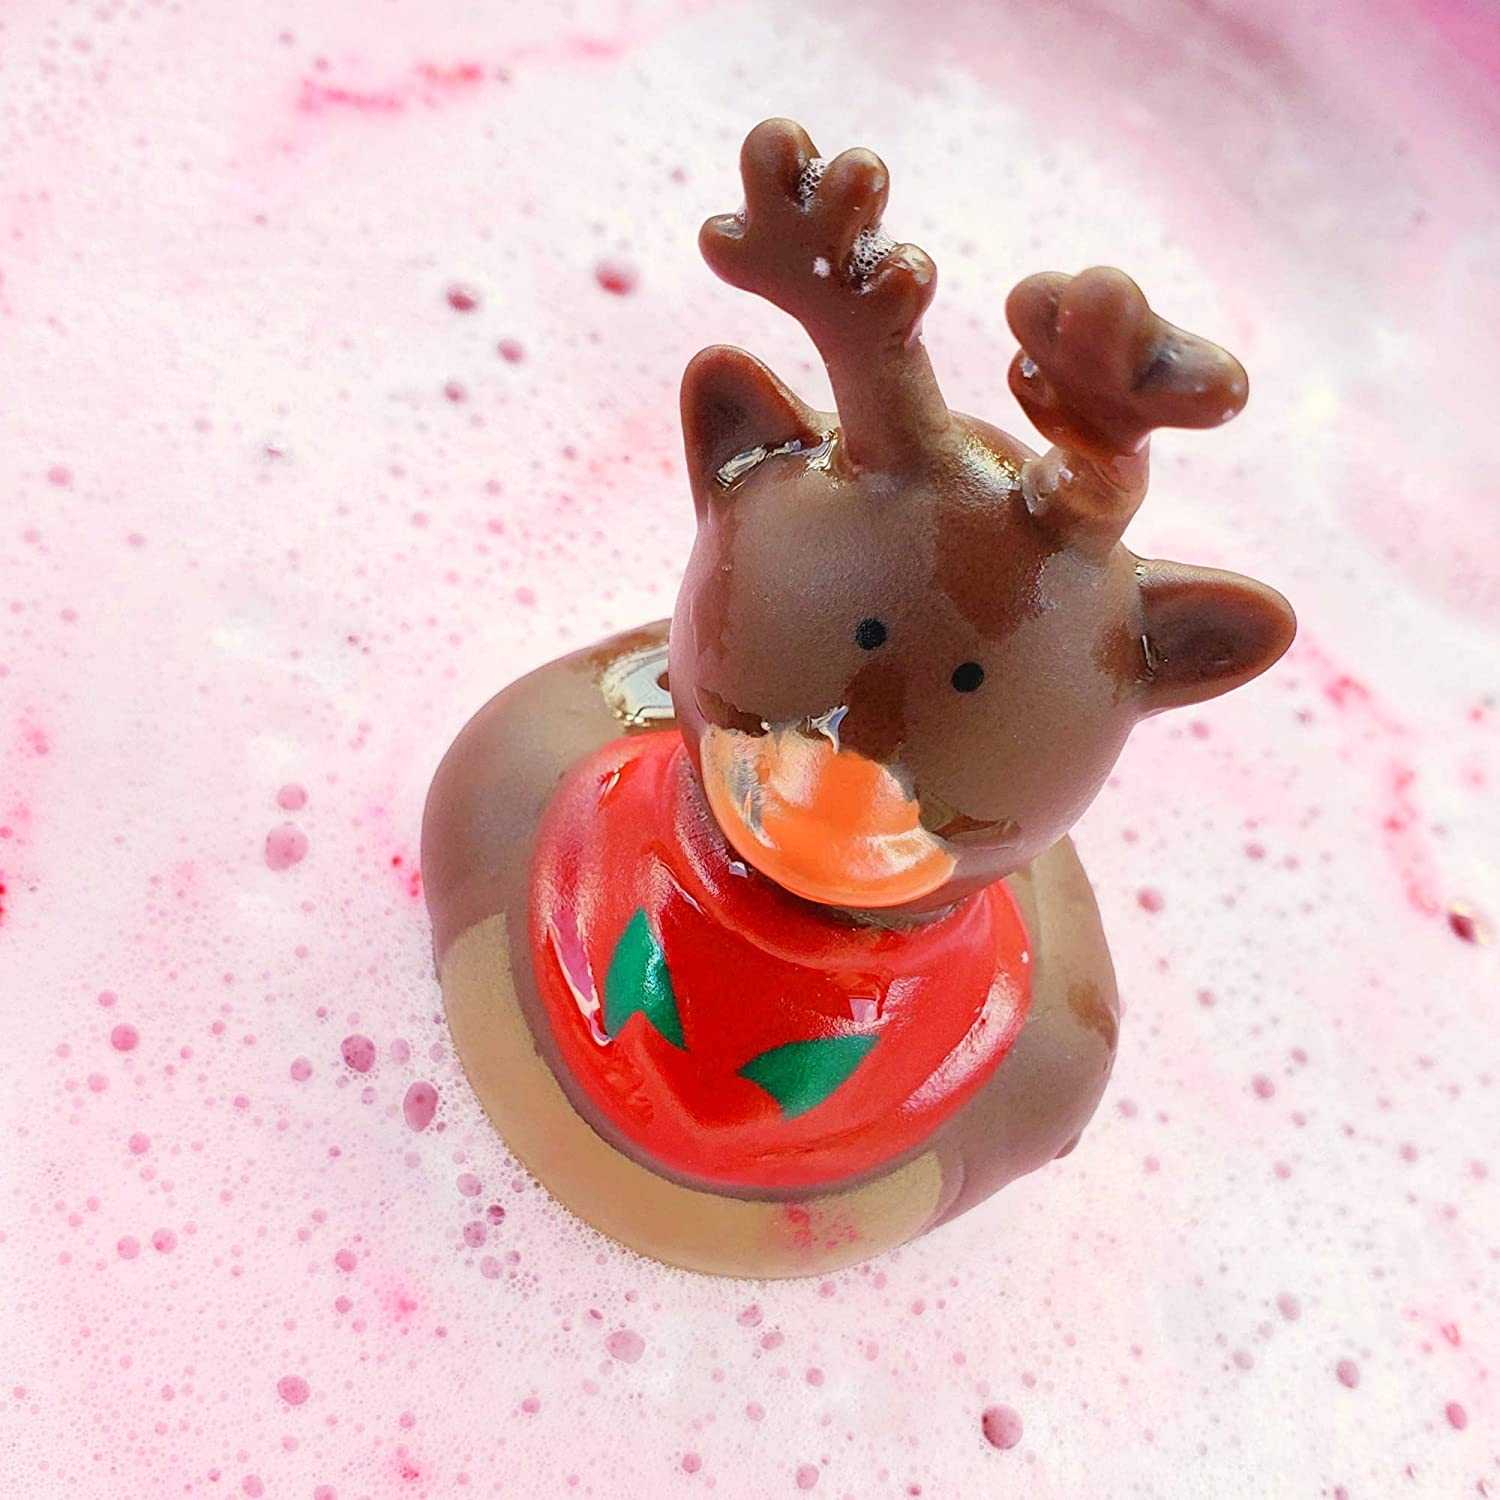 Red Bath Bomb for Kids Early Christmas Gift Stocking Stuffer for Boys and Girls 7oz Reindeer Games Bath Bomb with Rubber Duck Candy Cane Scent